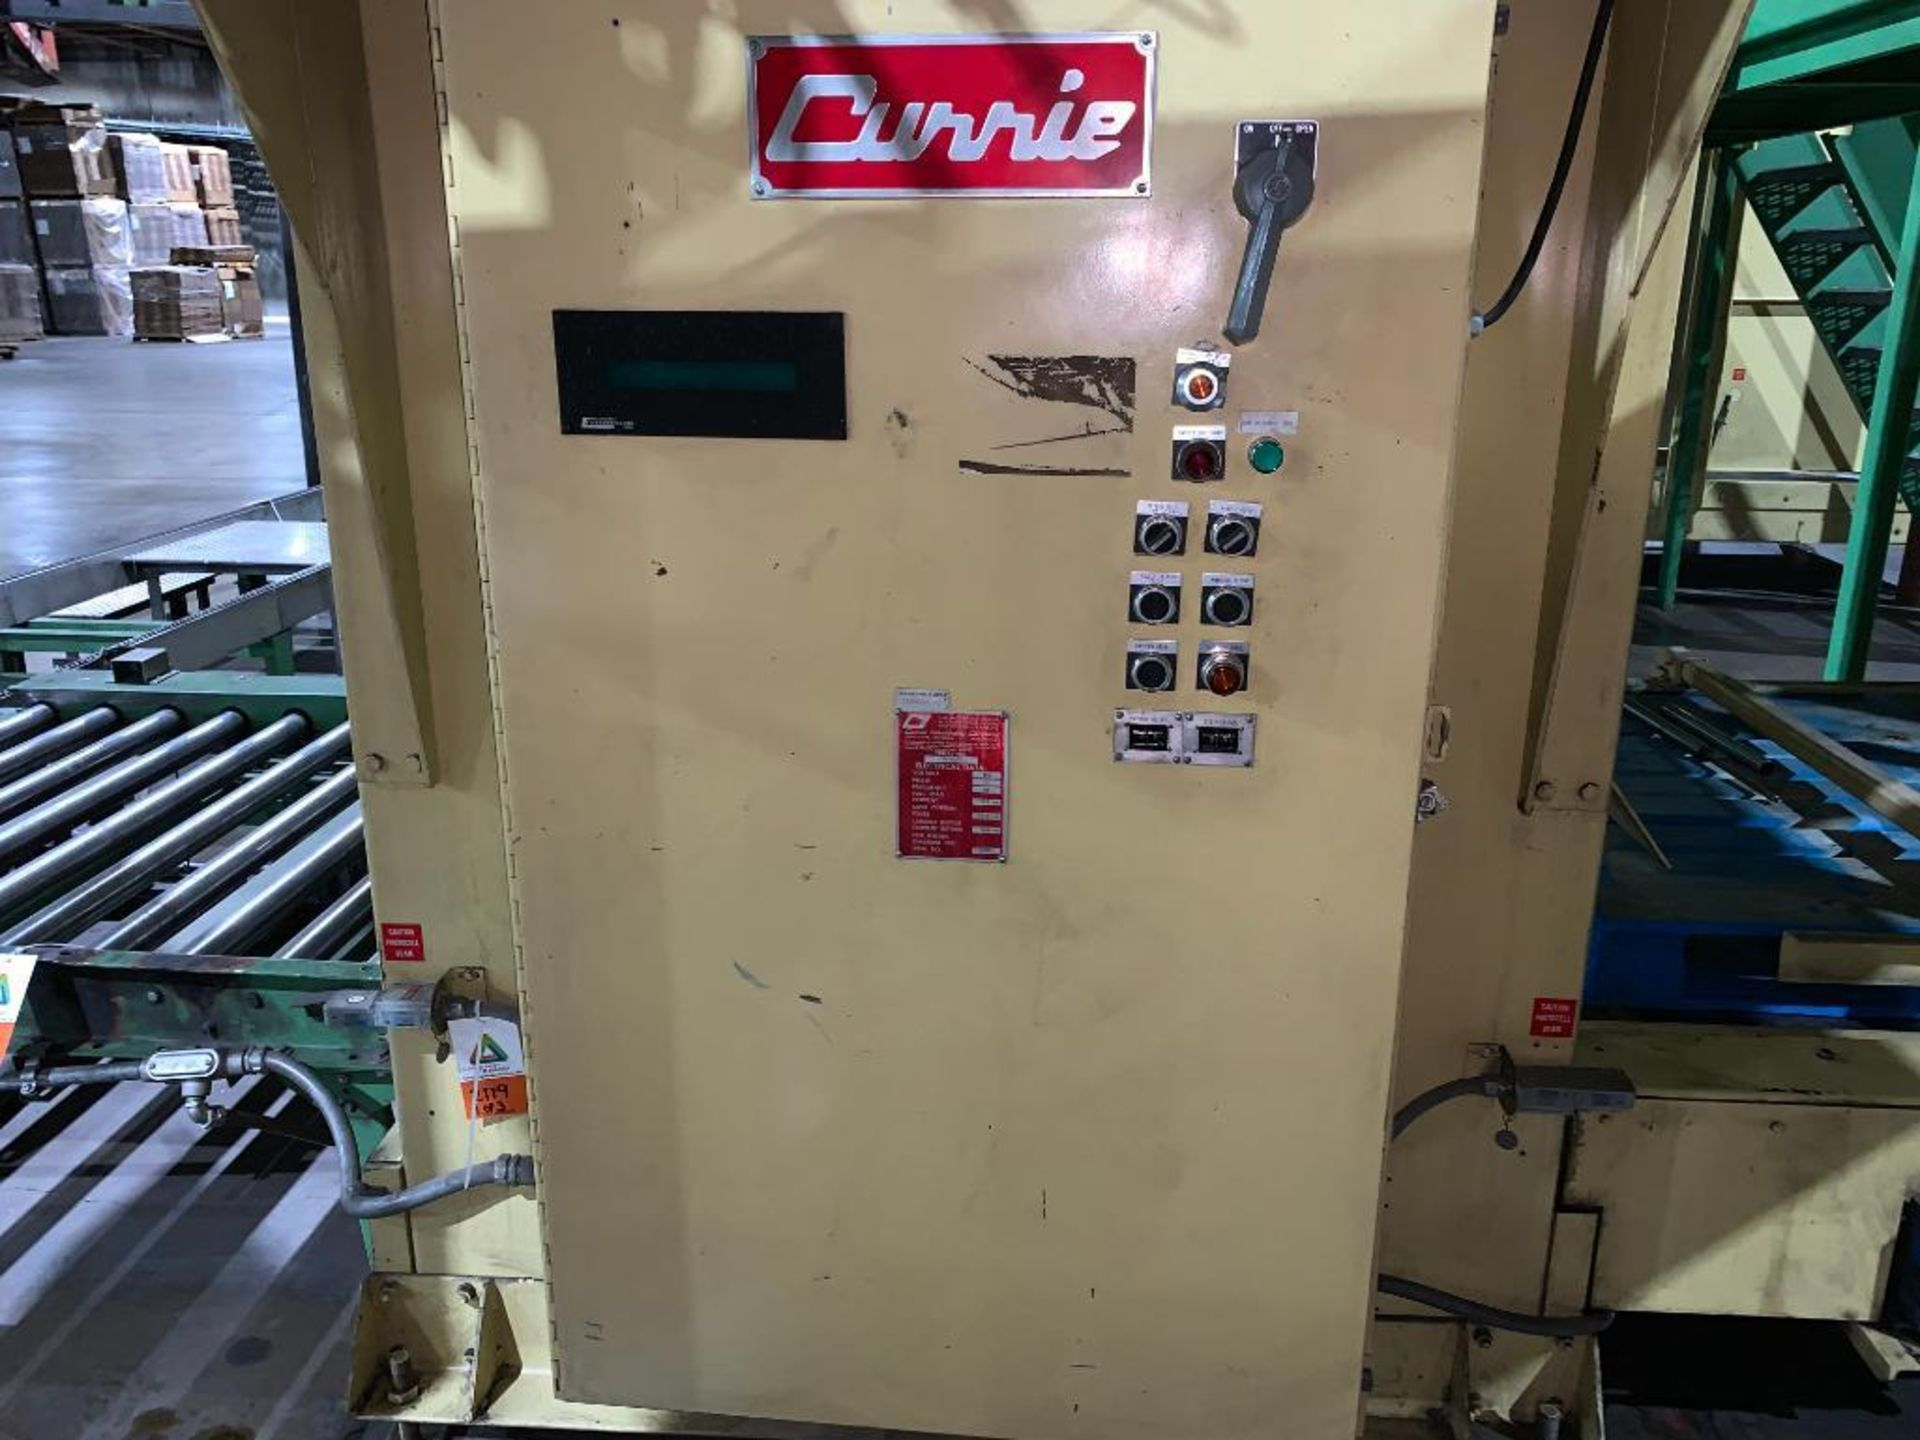 1992 Currie top to bottom palletizer, machine number LSP-5-1177 - Image 20 of 53